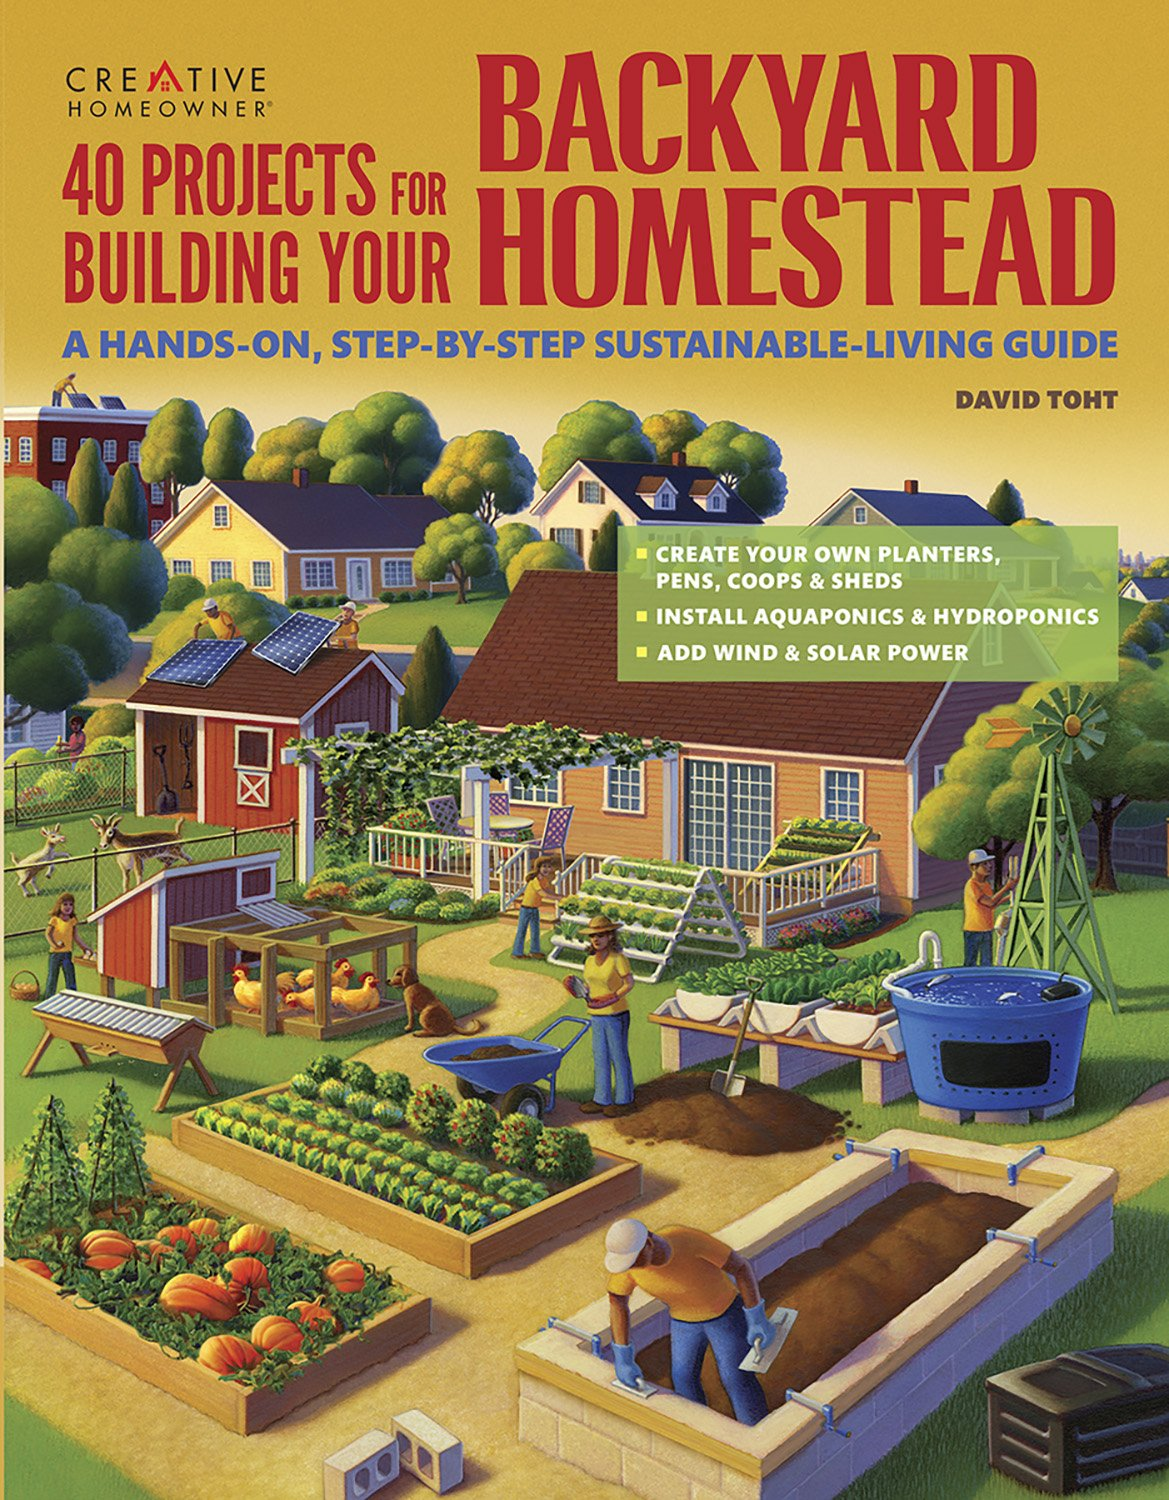 Projects Building Backyard Homestead Hands product image